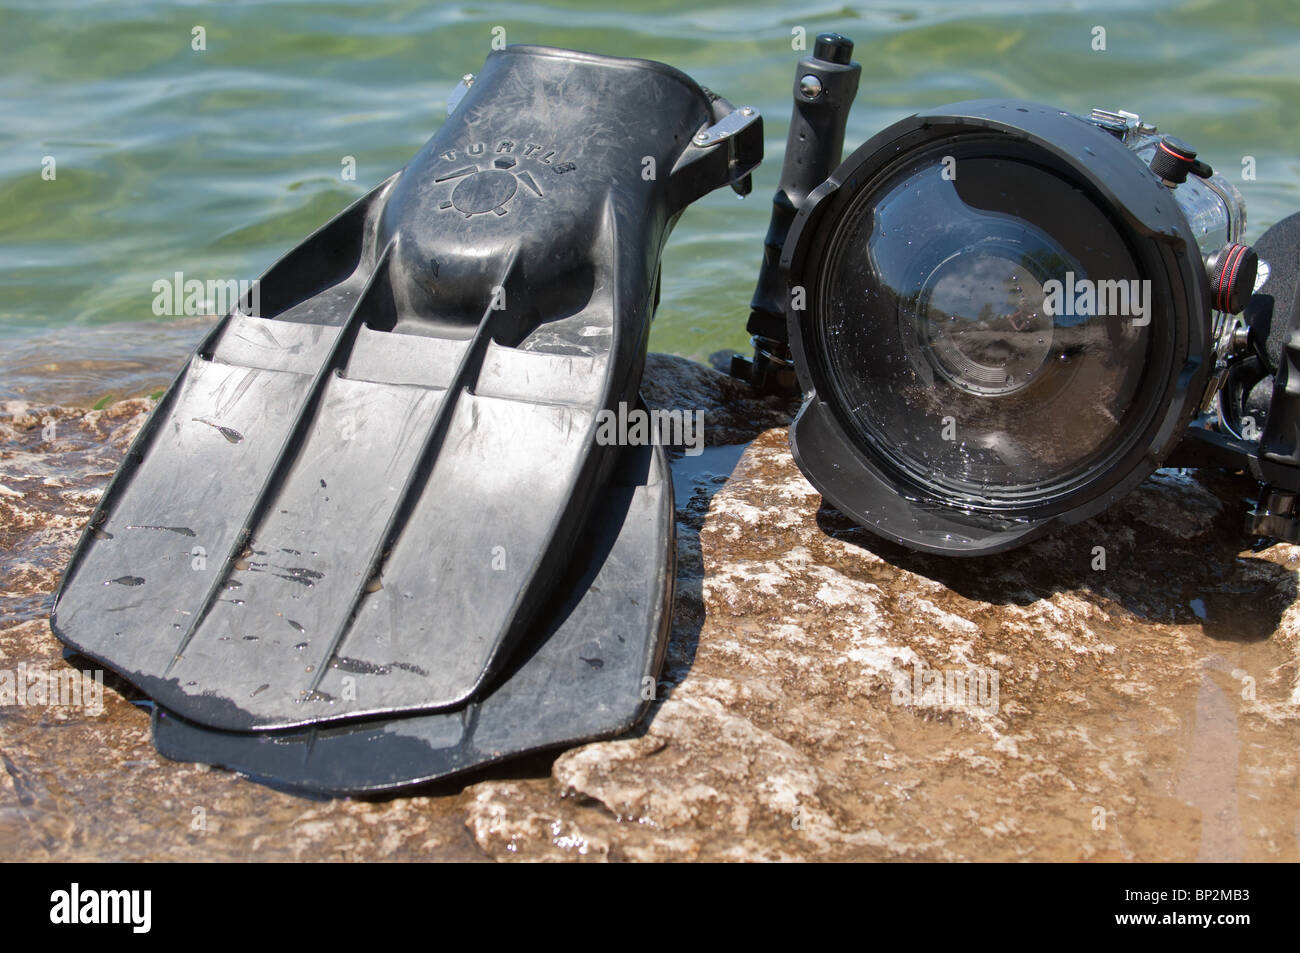 Dive fins and underwater camera housings can commonly be found amongst most scuba divers. - Stock Image